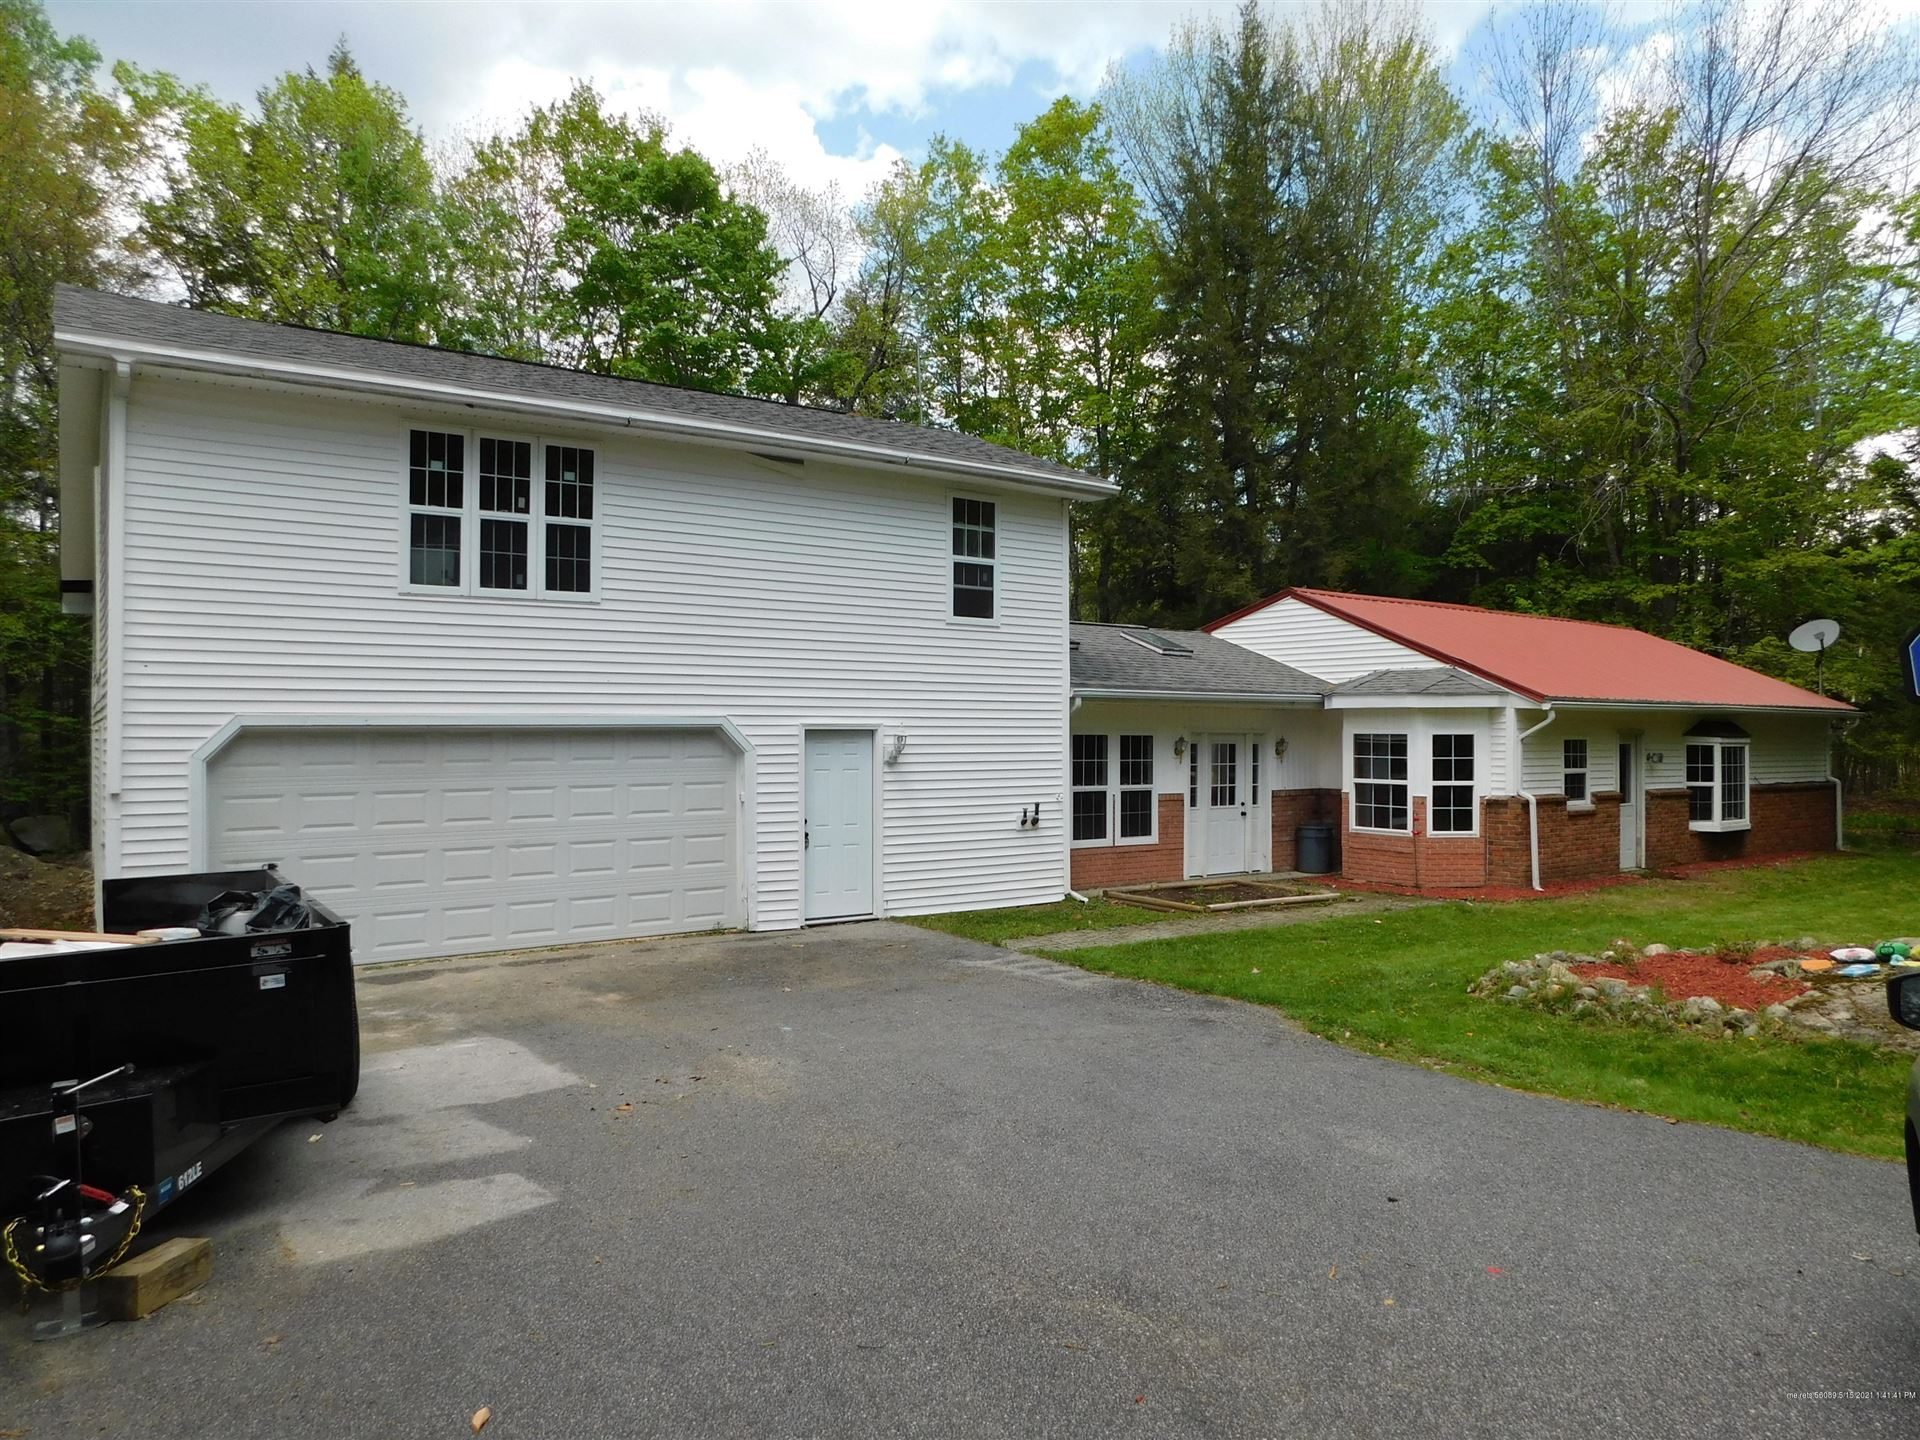 Photo of 134 Martin Stream Rd, Fairfield, ME 04937 (MLS # 1491785)